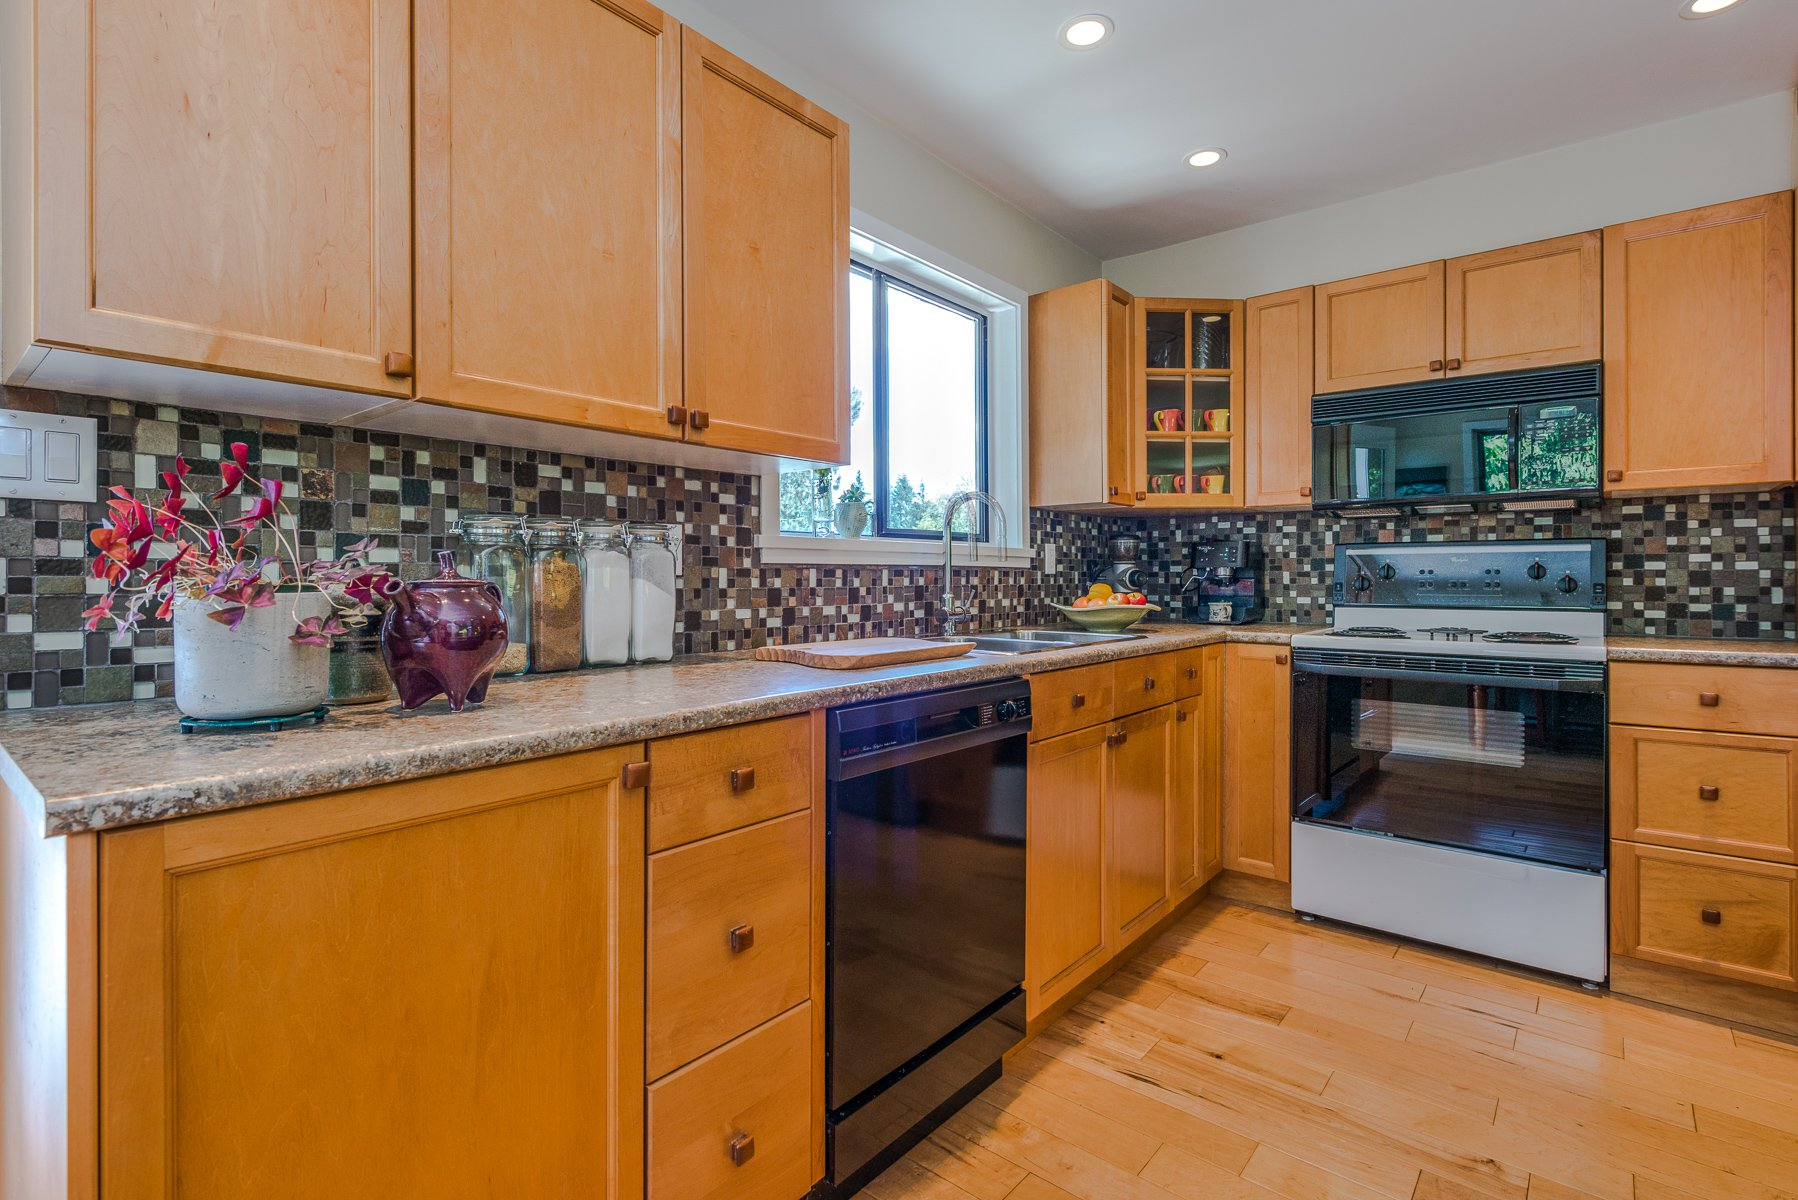 Photo 6: Photos: 1196 DEEP COVE Road in North Vancouver: Deep Cove Townhouse for sale : MLS®# R2279421